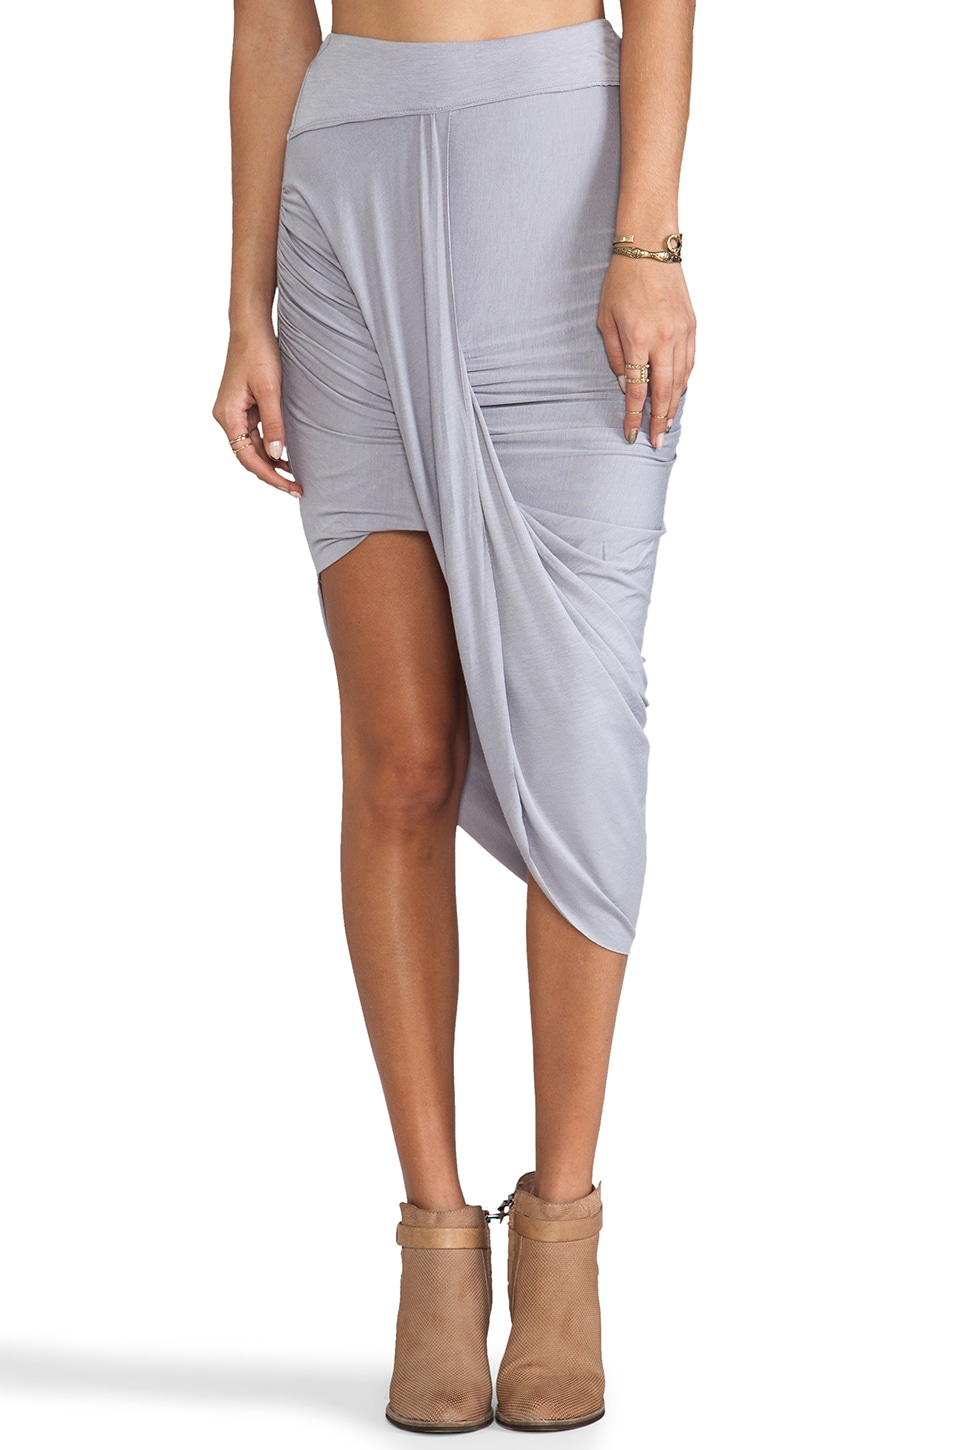 Free People Twist N Shout Skirt in Vapor Blue